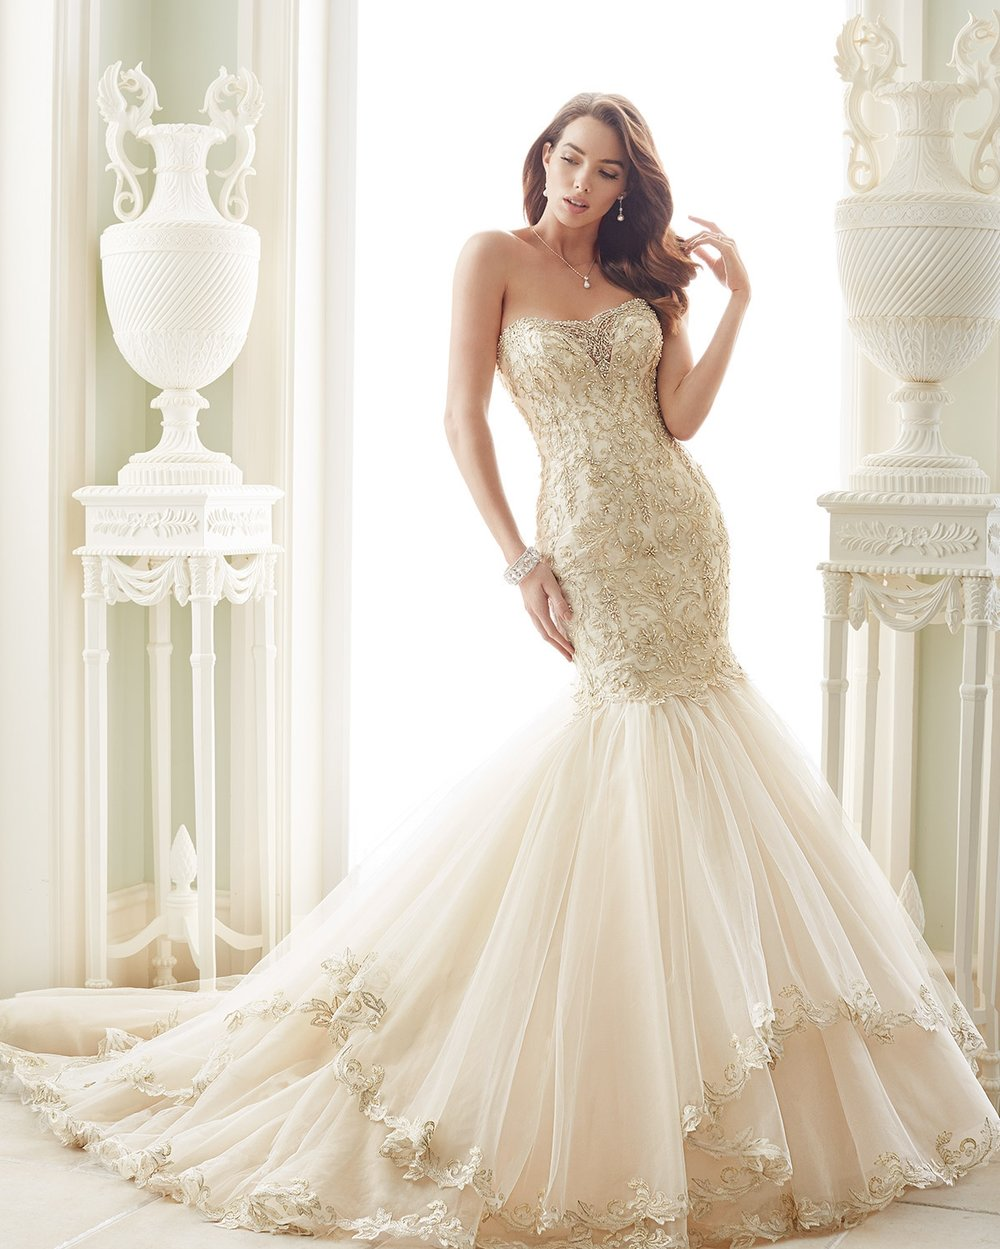 mon cheri bridal Ivory/Pewter  Retail Price $2123 | Message for price